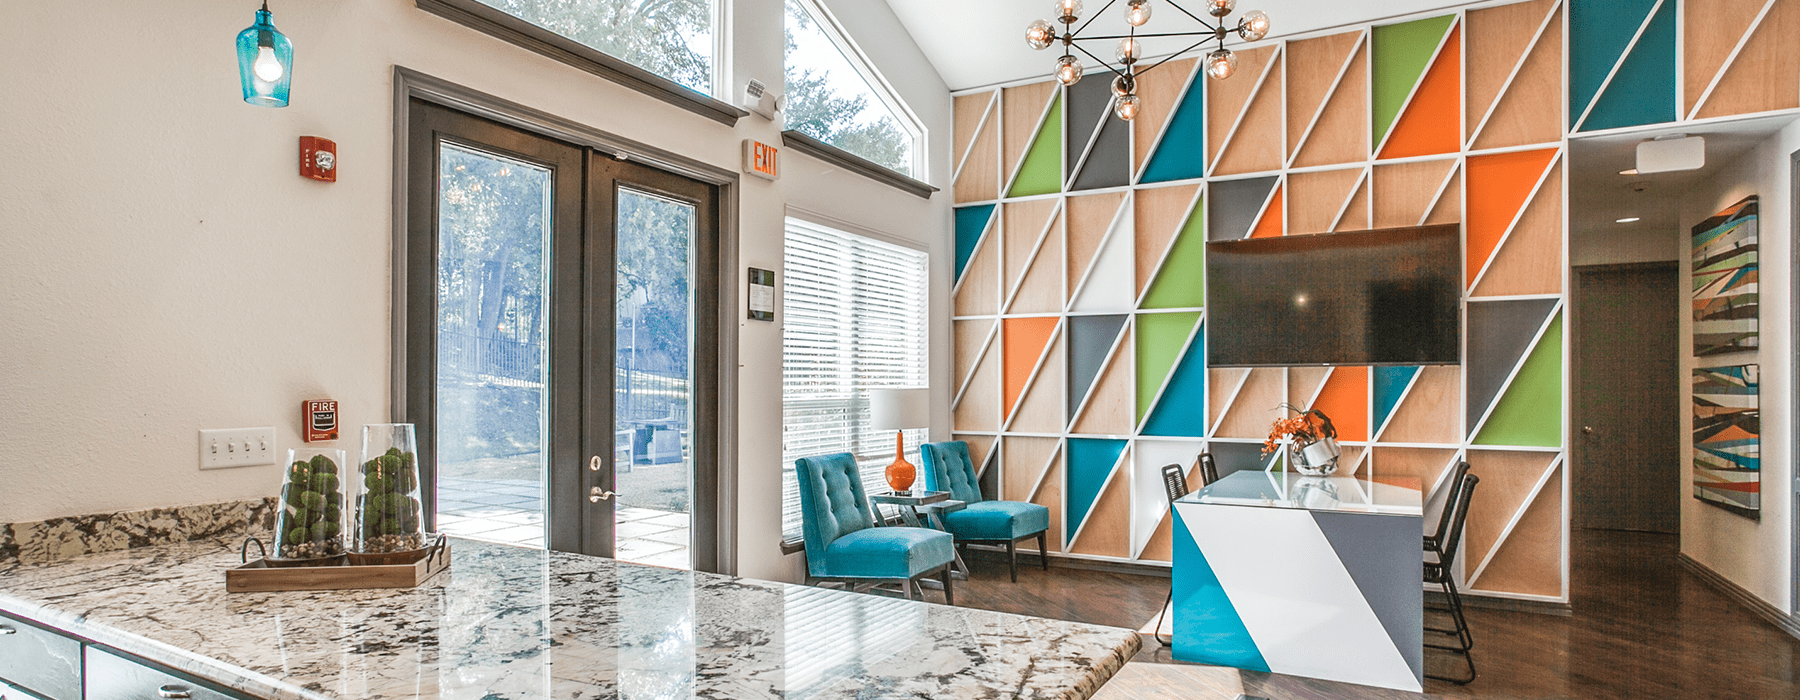 lounge area with modern seating and colorful decor